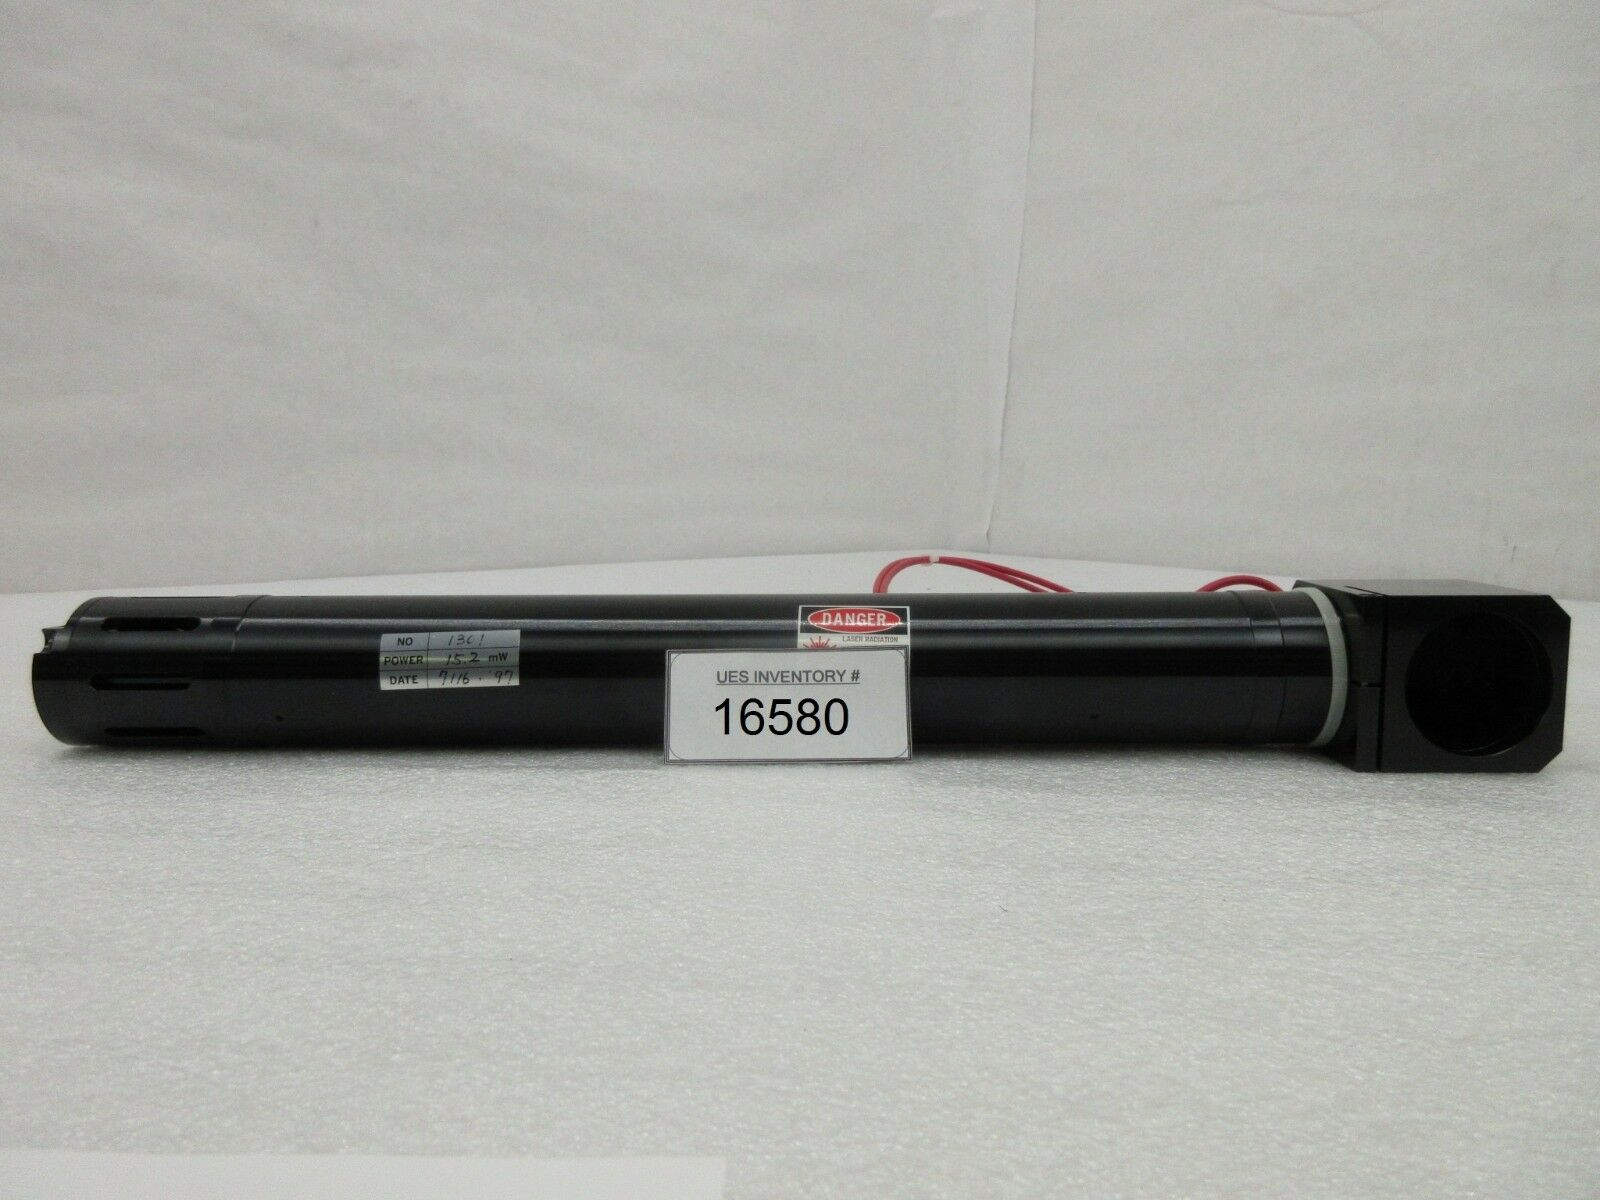 Nikon 1301 Helium Neon Laser Max 20mW 632.8nm NSR-S202A Used Working